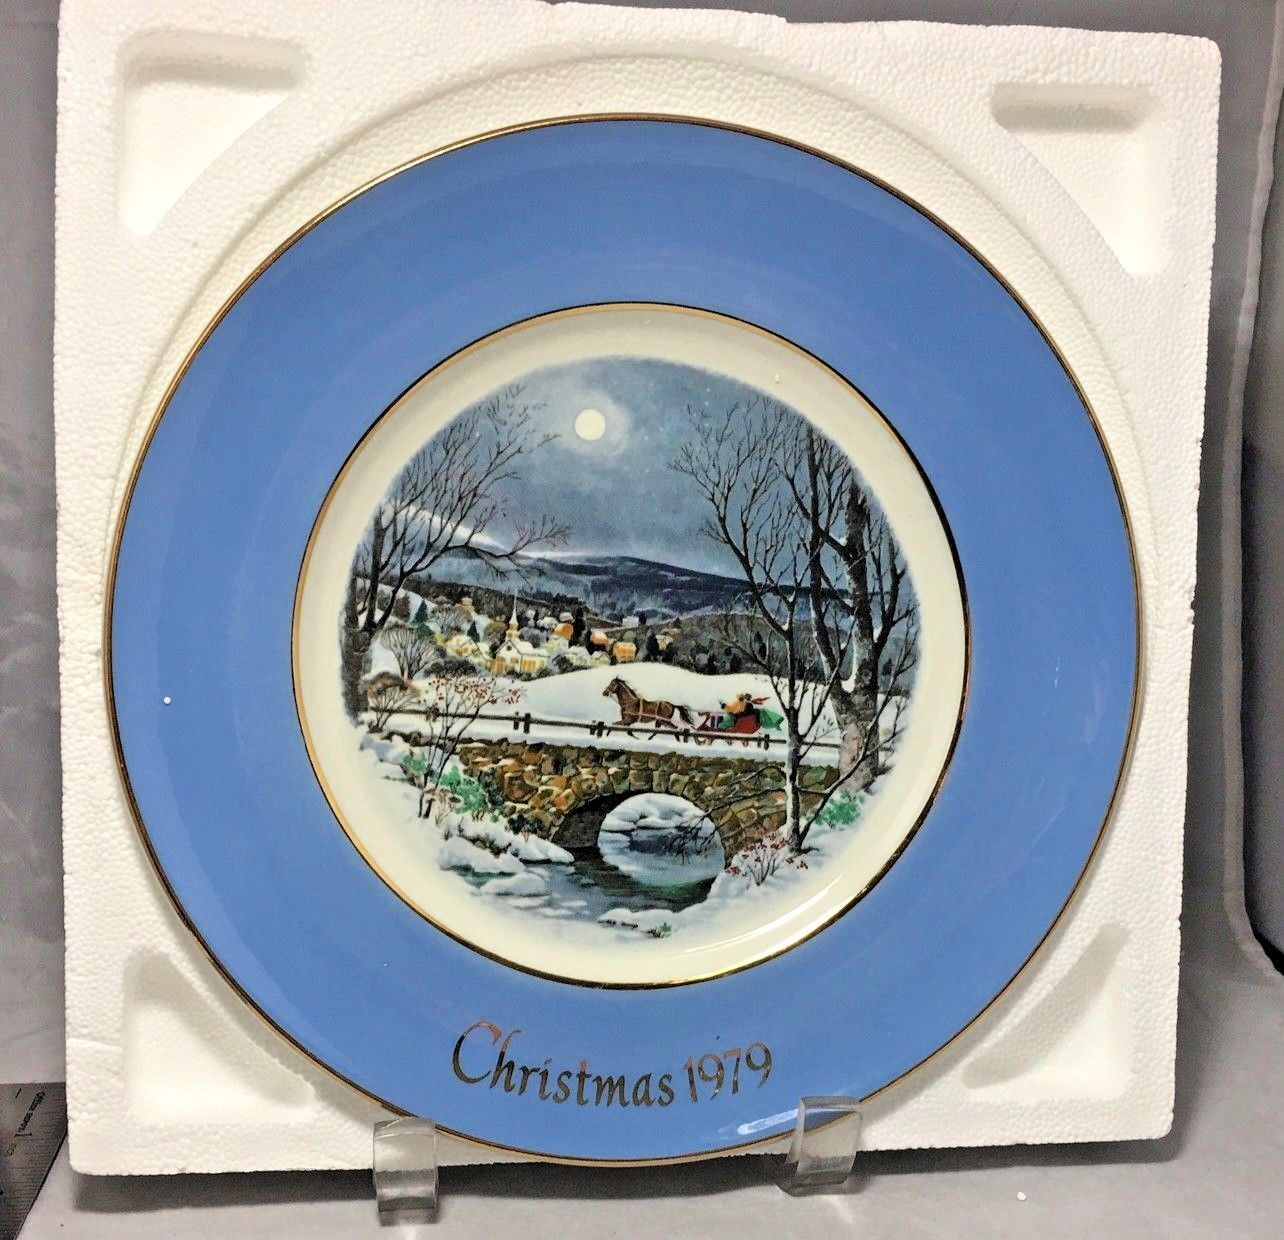 "Dashing through the snow Christmas 1979 Avon 8.5"" plate in box Wedgwood England"